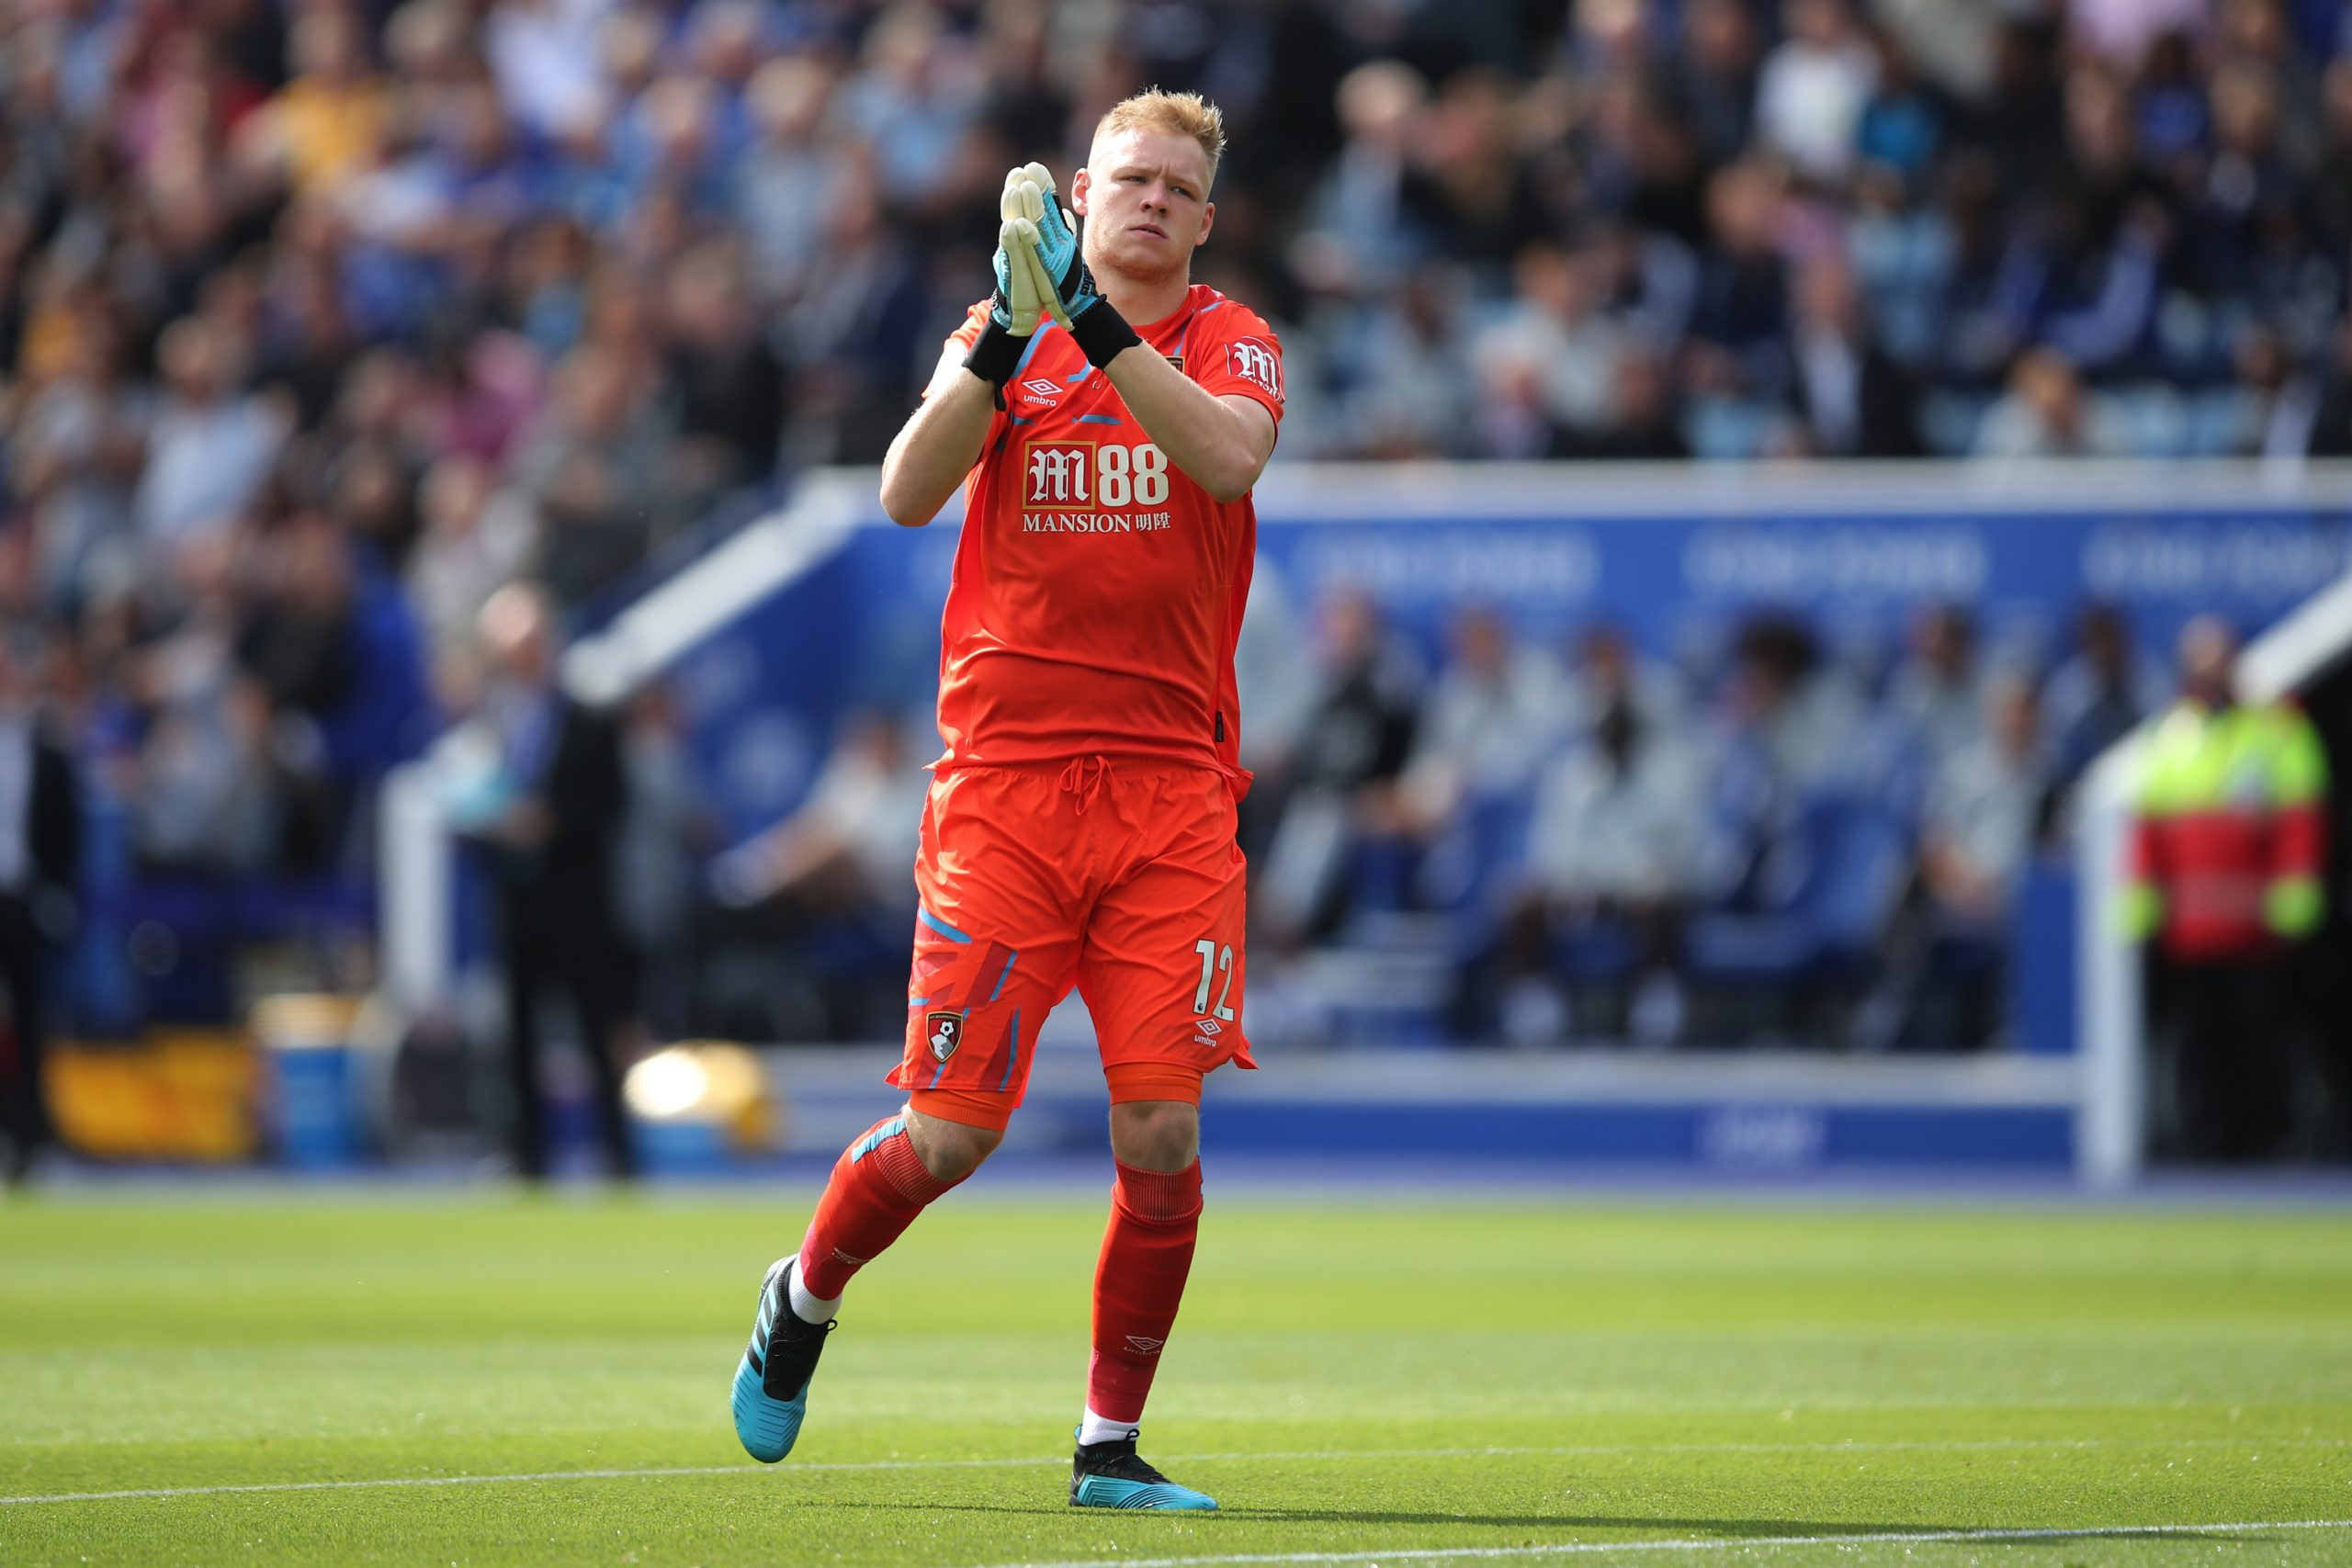 Aaron Ramsdale in action for Bournemouth (Getty Images)